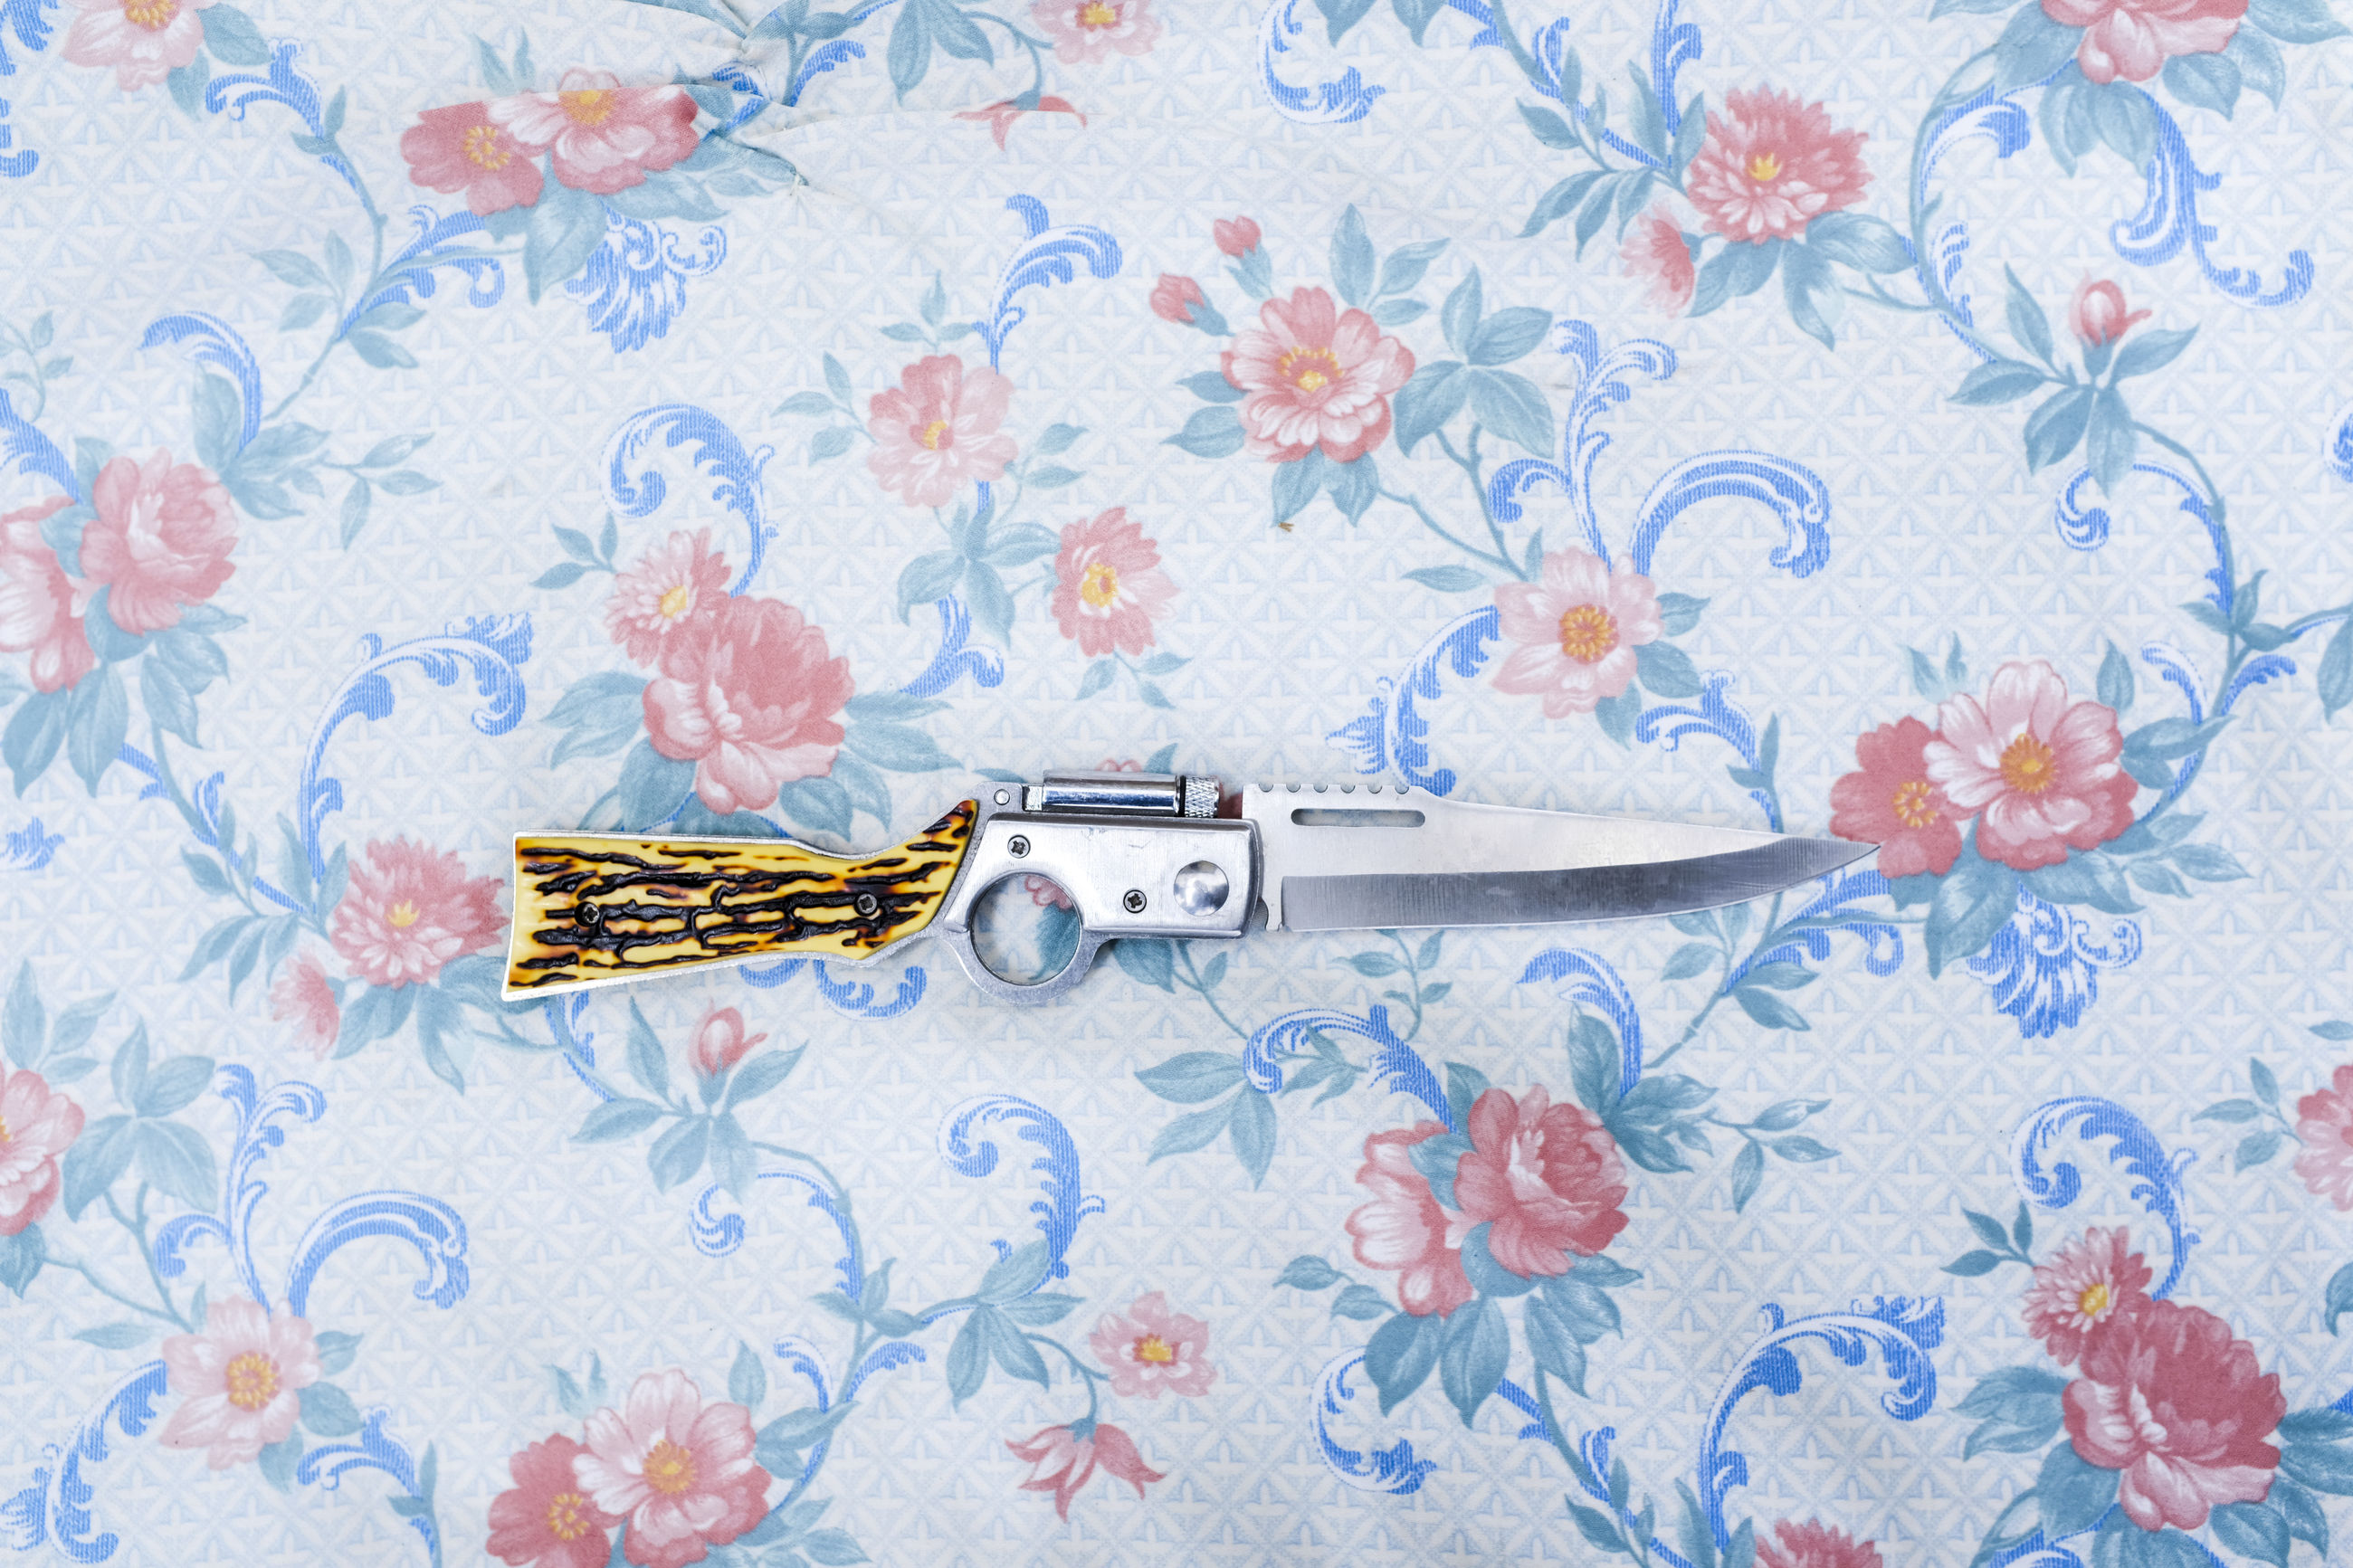 pattern, floral pattern, blue, indoors, no people, studio shot, wallpaper, close-up, flower, single object, textile, design, art and craft, flowering plant, domestic room, ornate, handgun, weapon, old, the past